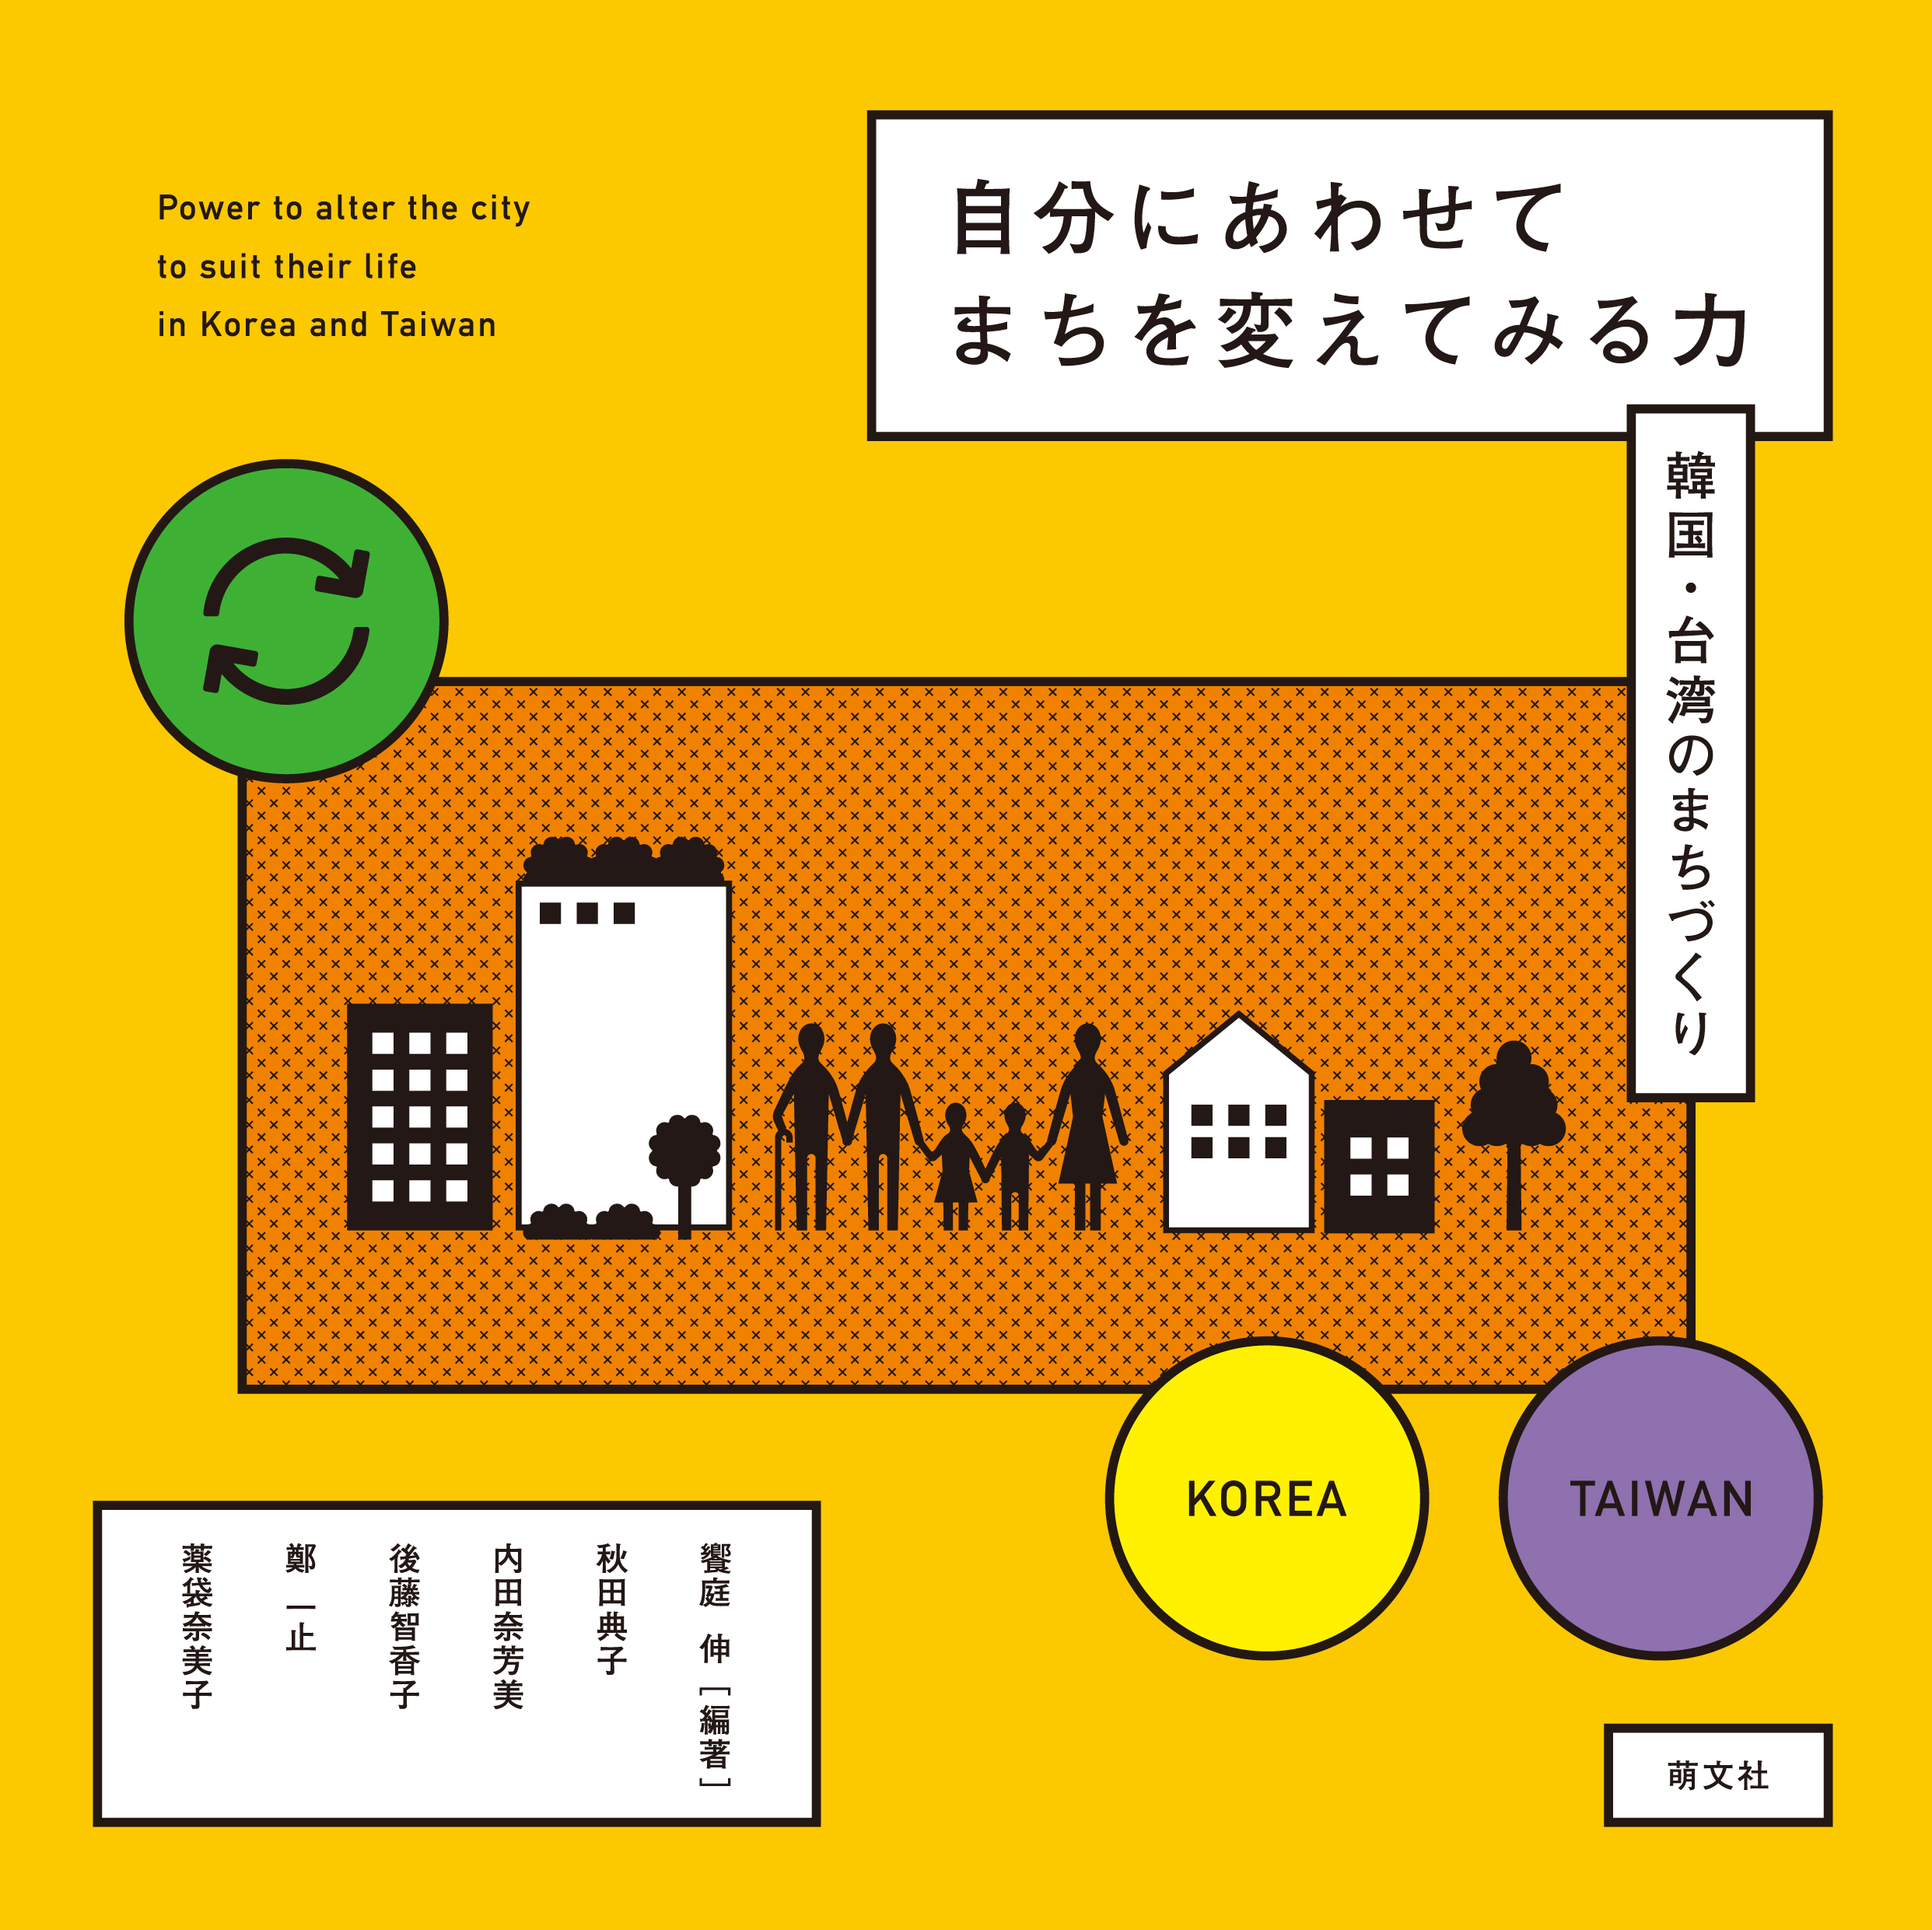 A yellow cover with graphics of people and town